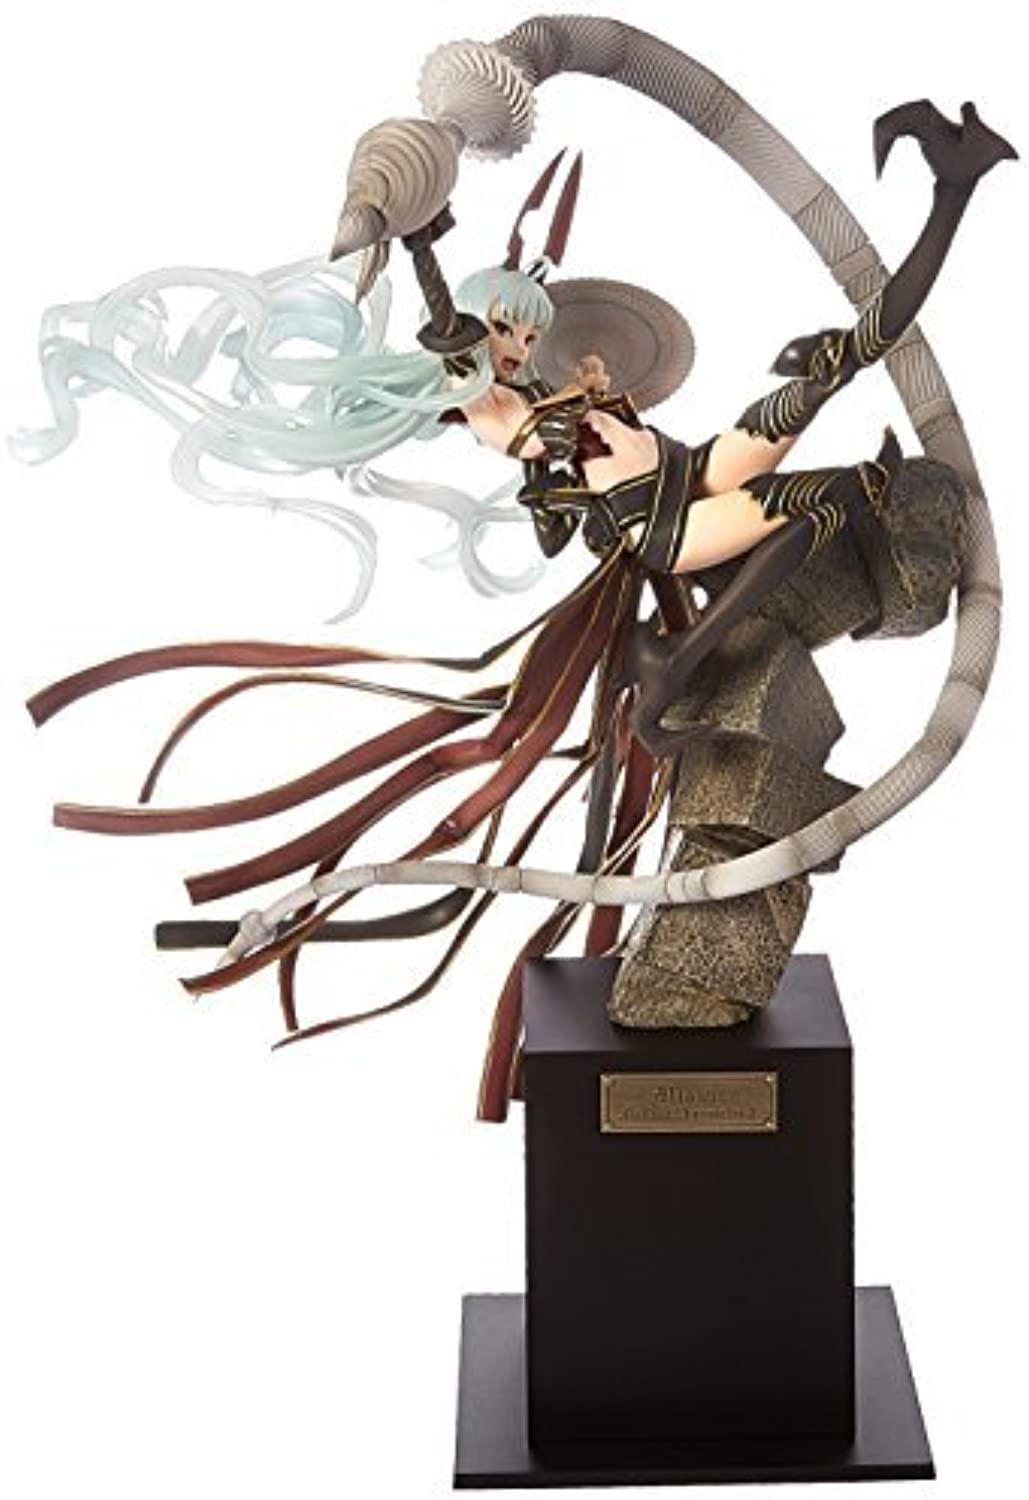 Alter Valkyria Chronicles 2  The Gallia Royal Military Academy Aliasse 1 7 Scale PVC Figure Statue by Alter